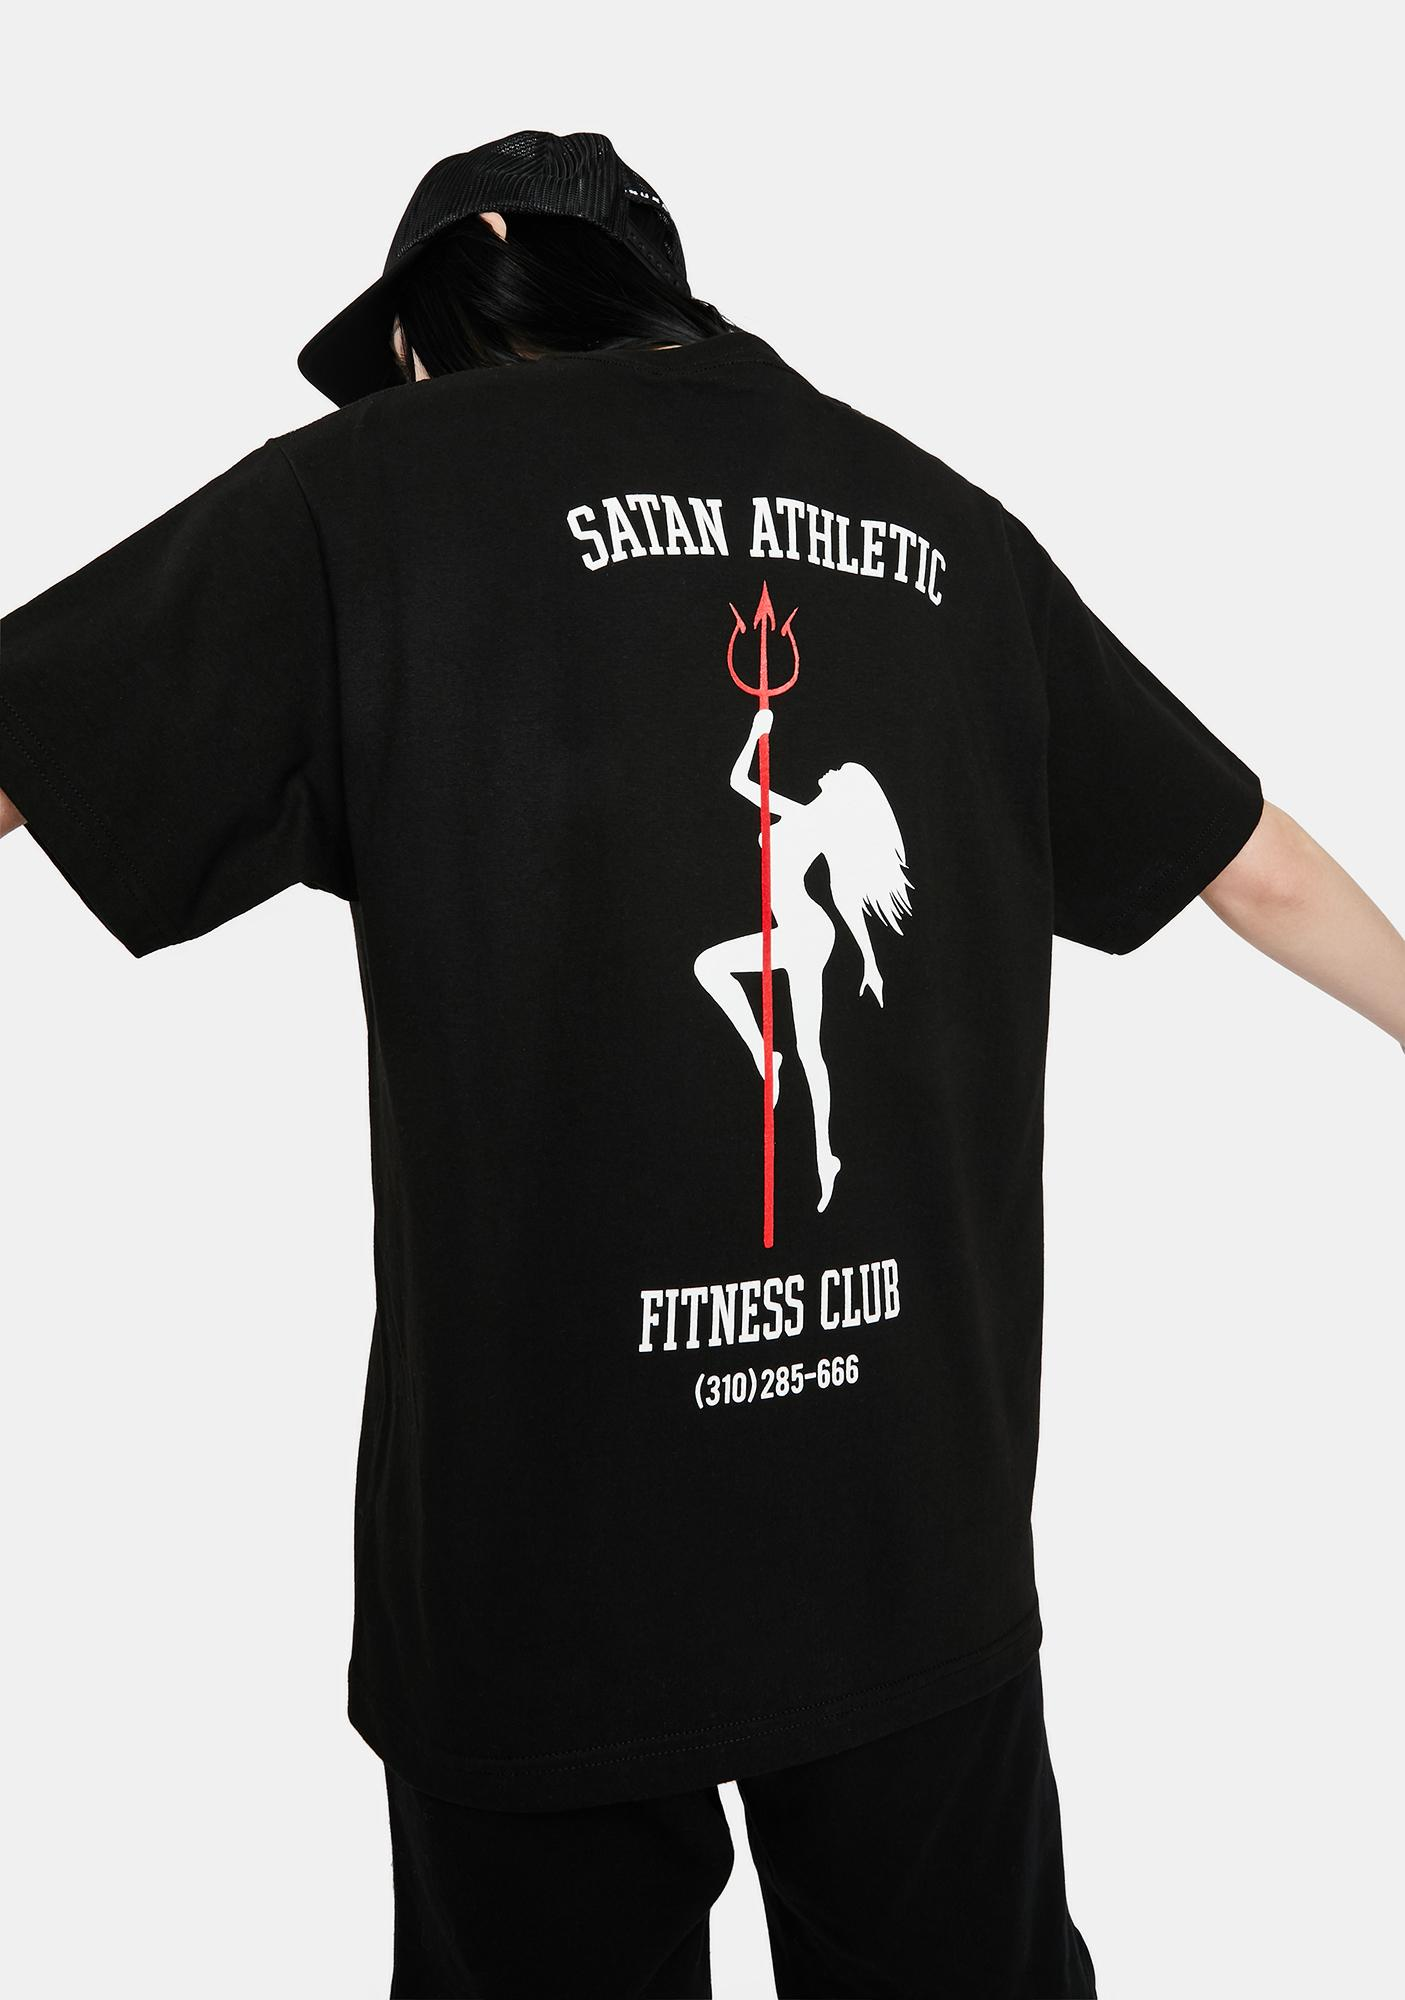 Satan Athletic Polo Fitness Club Graphic Tee